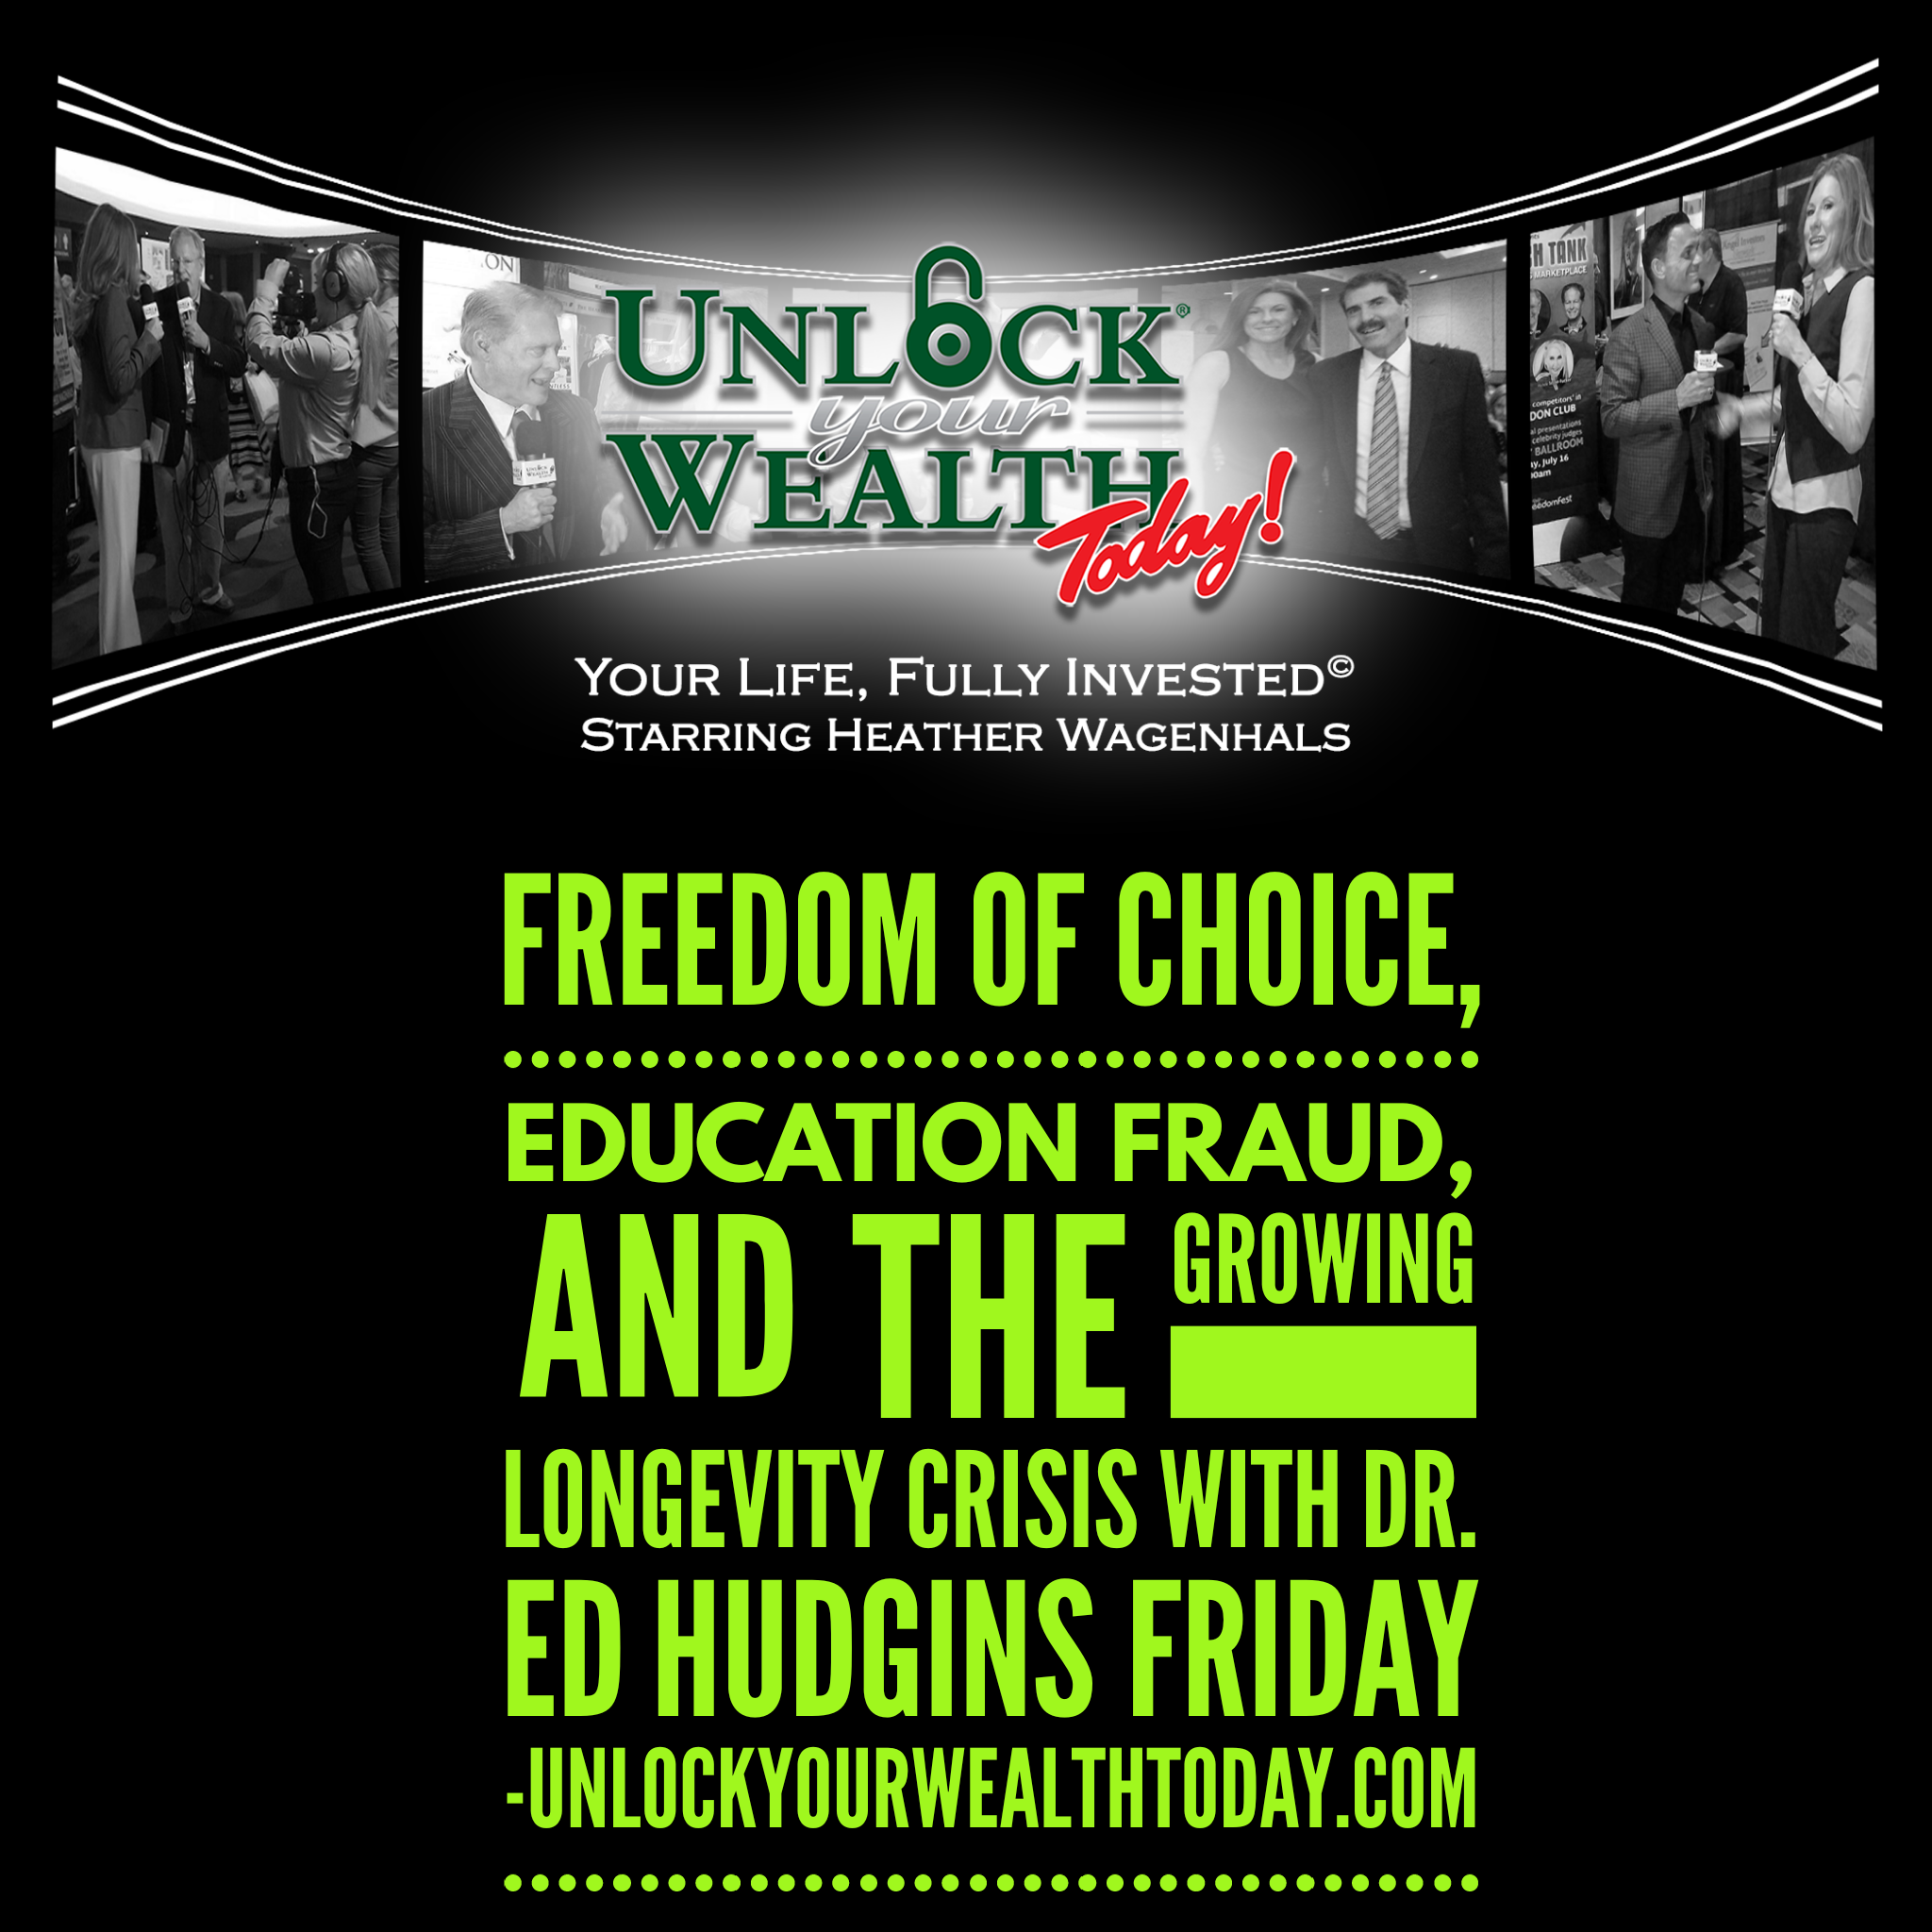 Artwork for Freedom of Choice, Education Fraud, And the Growing Longevity Crisis with Dr. Ed Hudgins